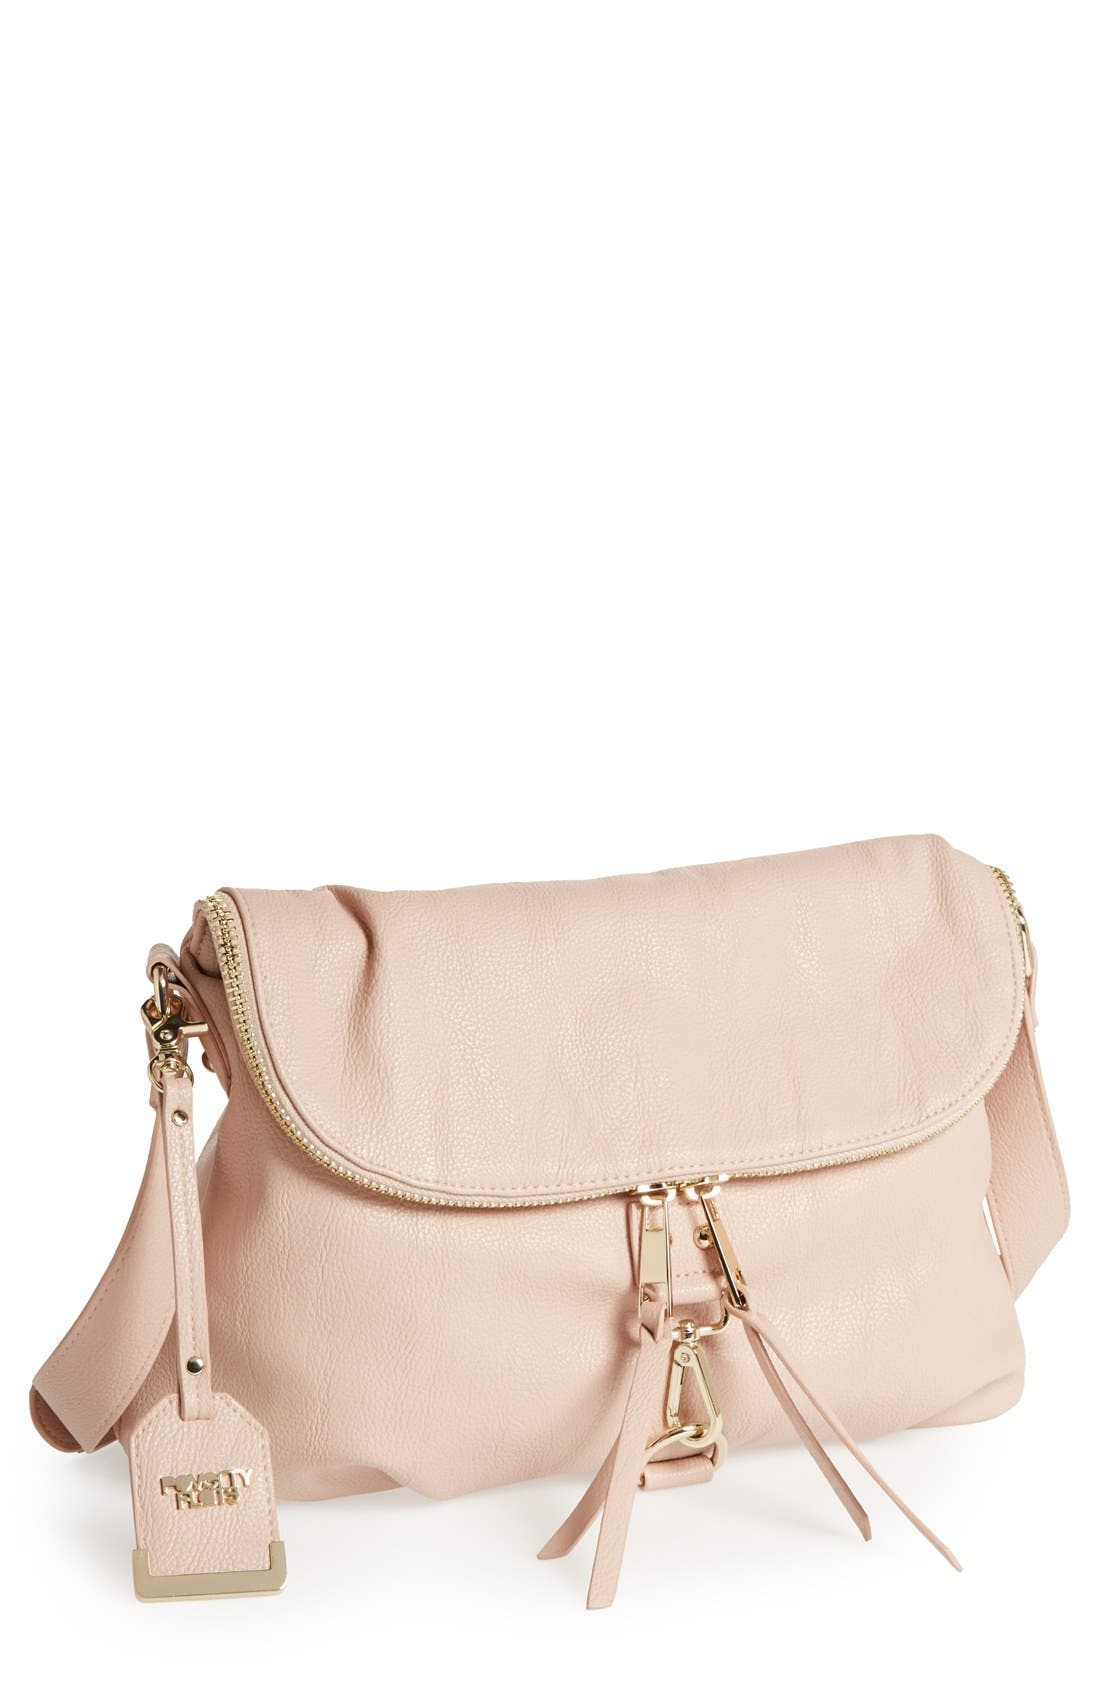 Alternate Image 1 Selected - POVERTY FLATS by rian 'Tunnel' Shoulder Bag